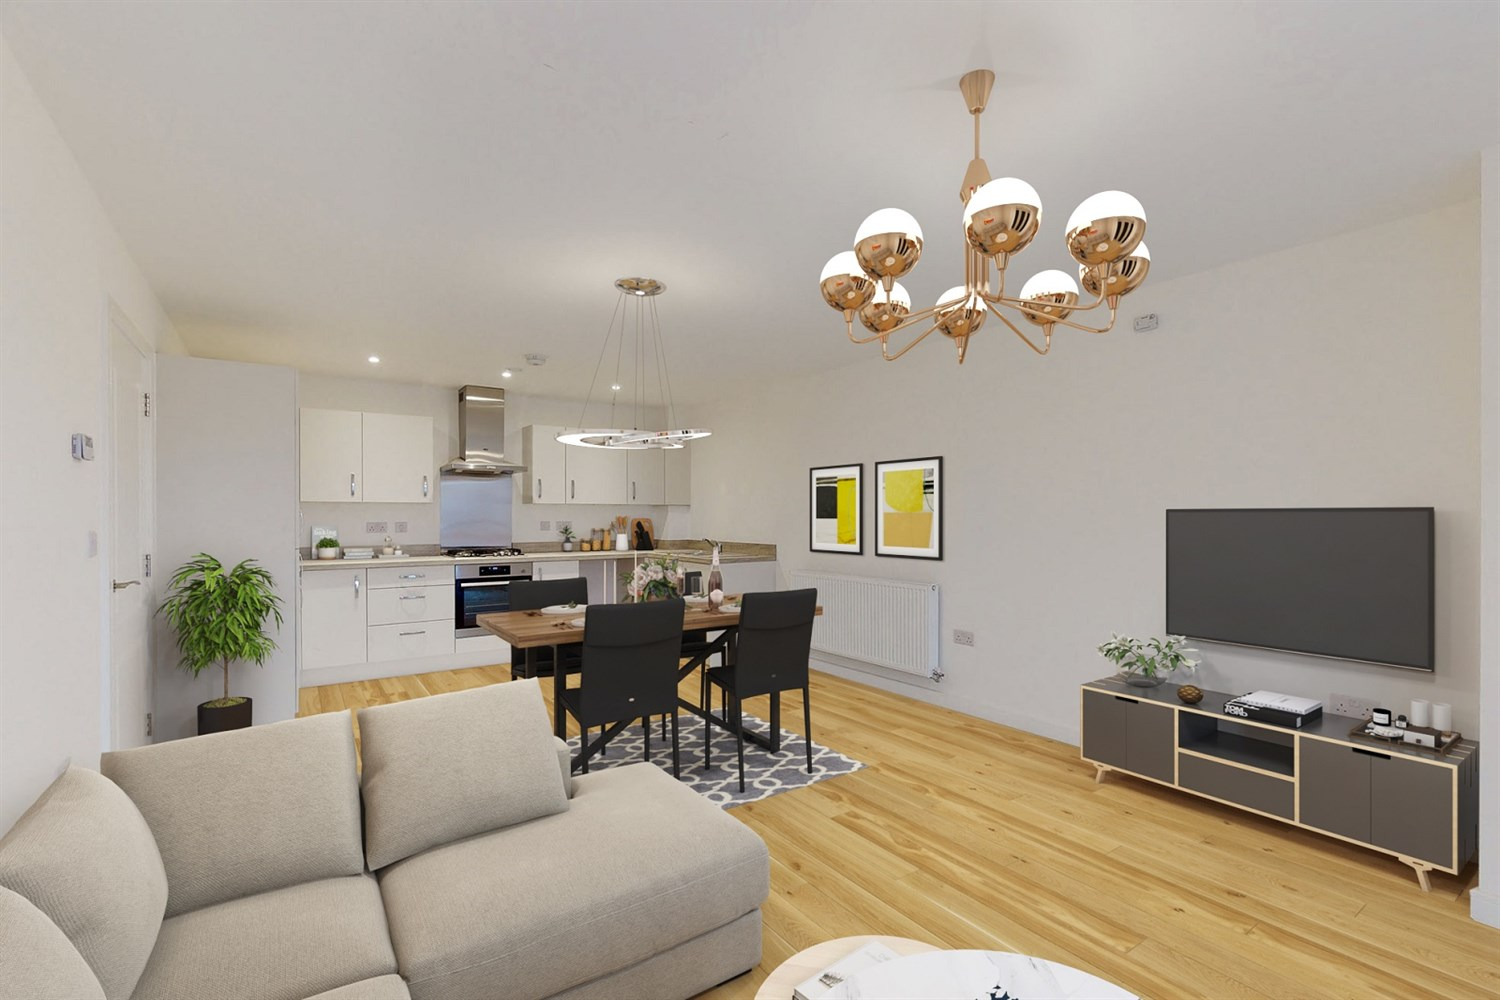 2 bedroom apartments at Renaissance - Portman Road, Reading RG30 1AH